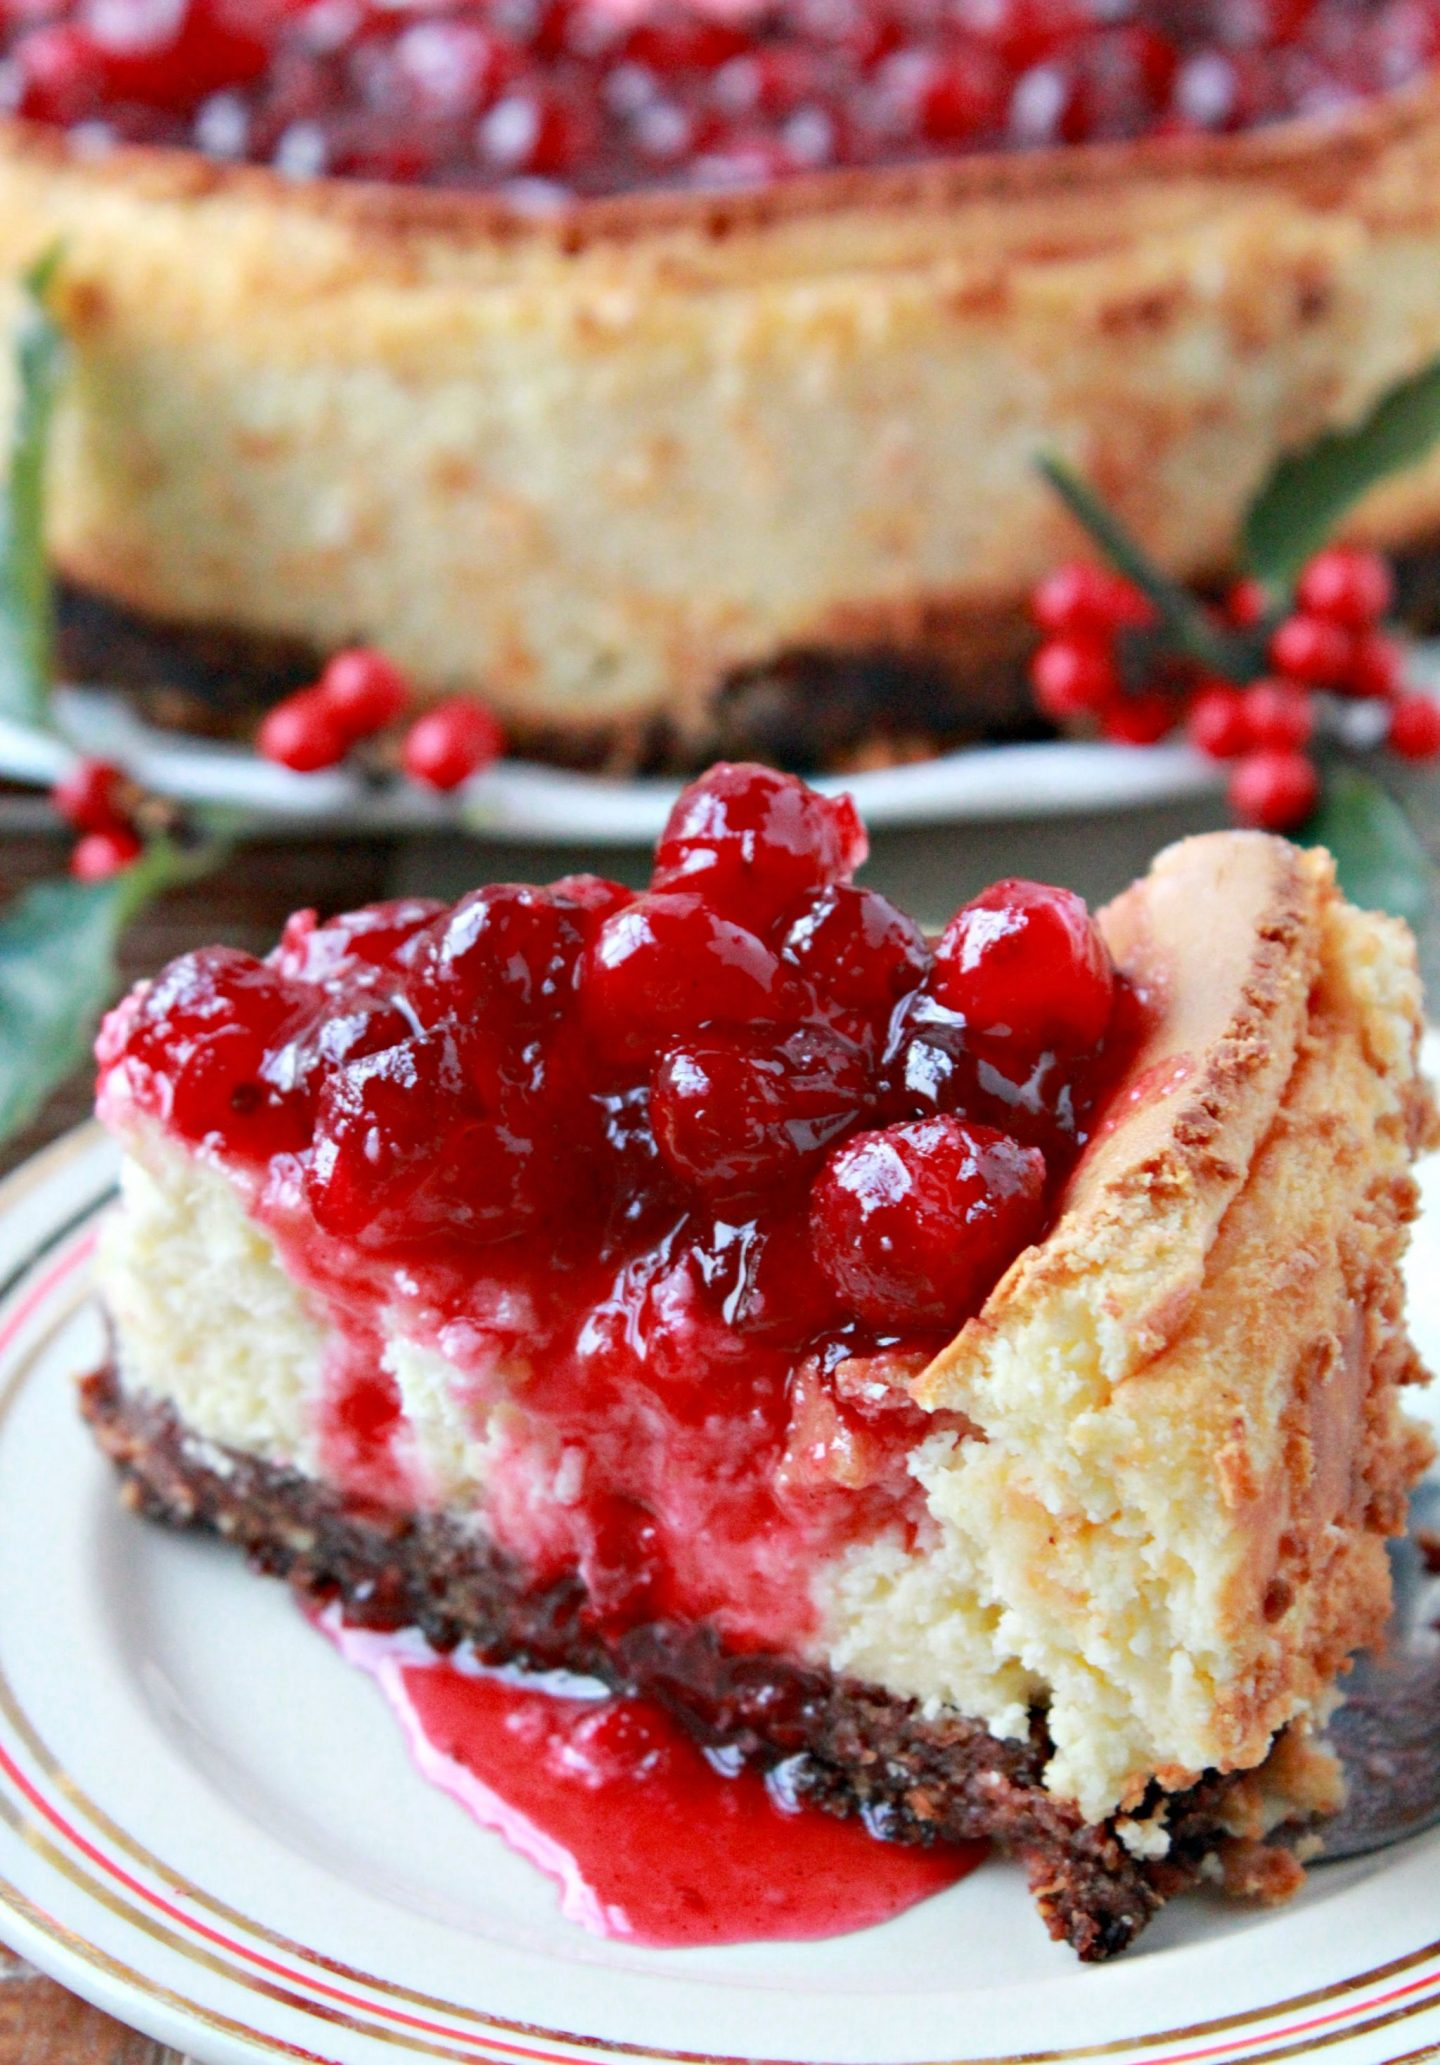 A deliciously creamy holiday cheesecake topped with a luscious sweet-tangy and perfectly spiced cranberry sauce. It is completely gluten-free so it's perfect for those on a wheat-free diet!